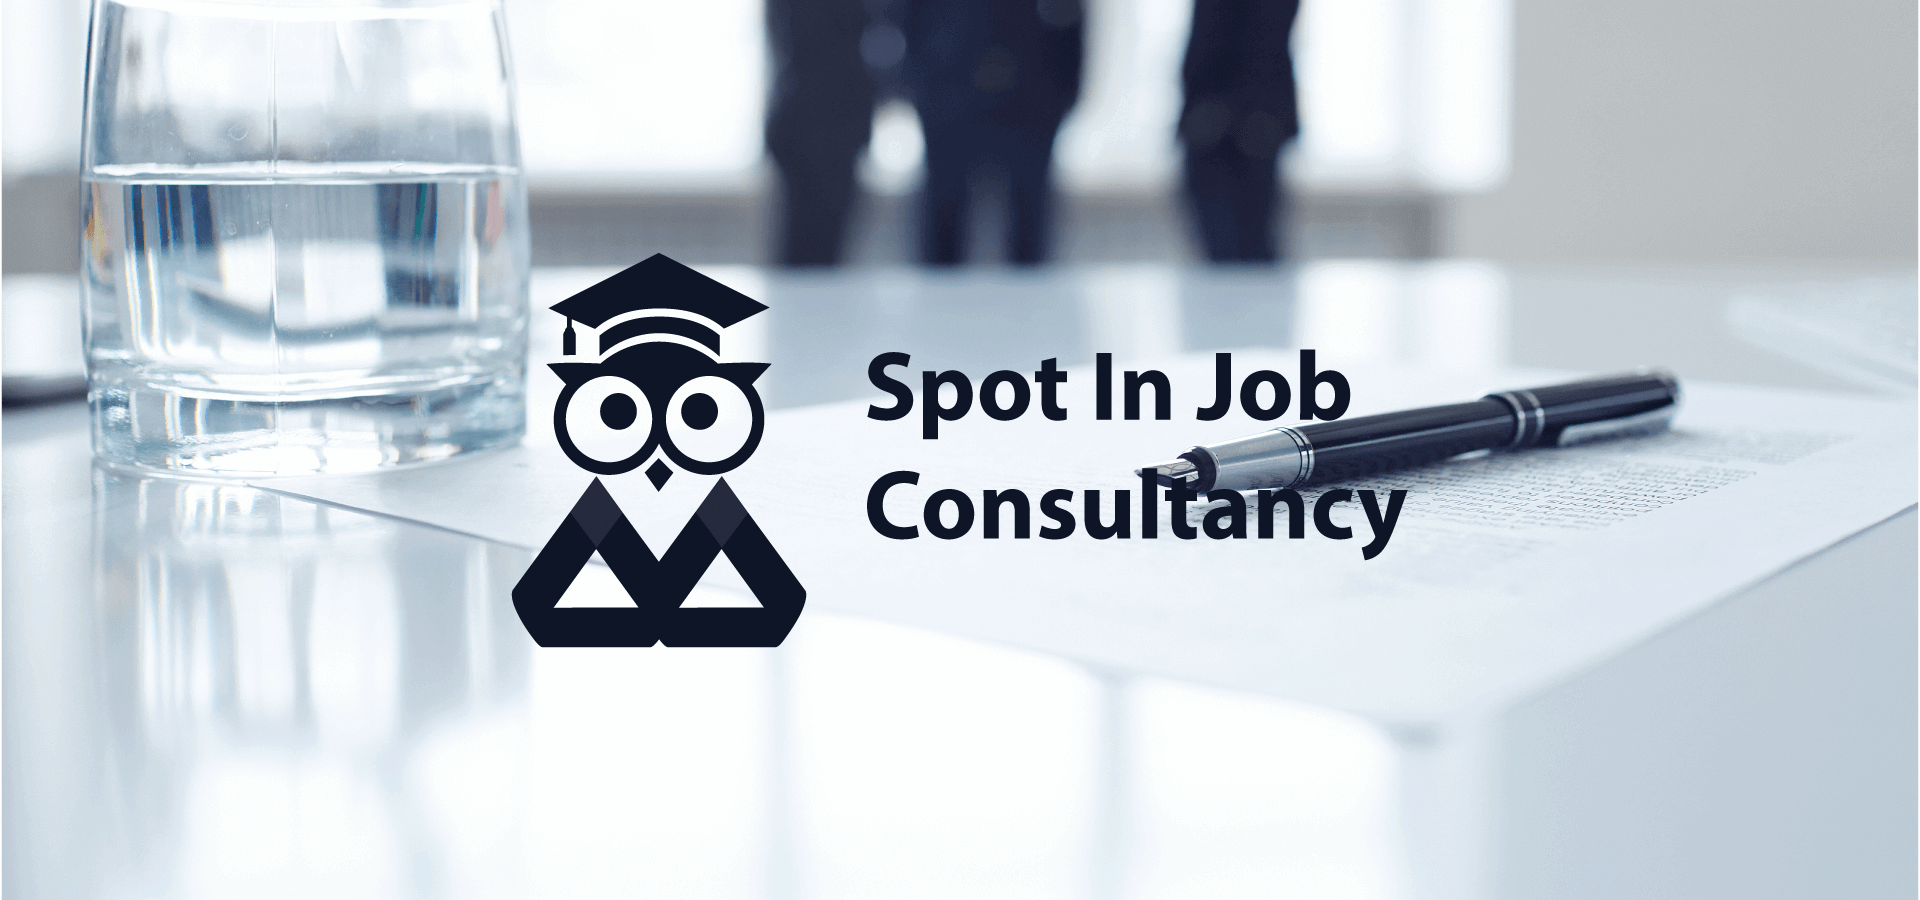 Spot In Job Consultancy